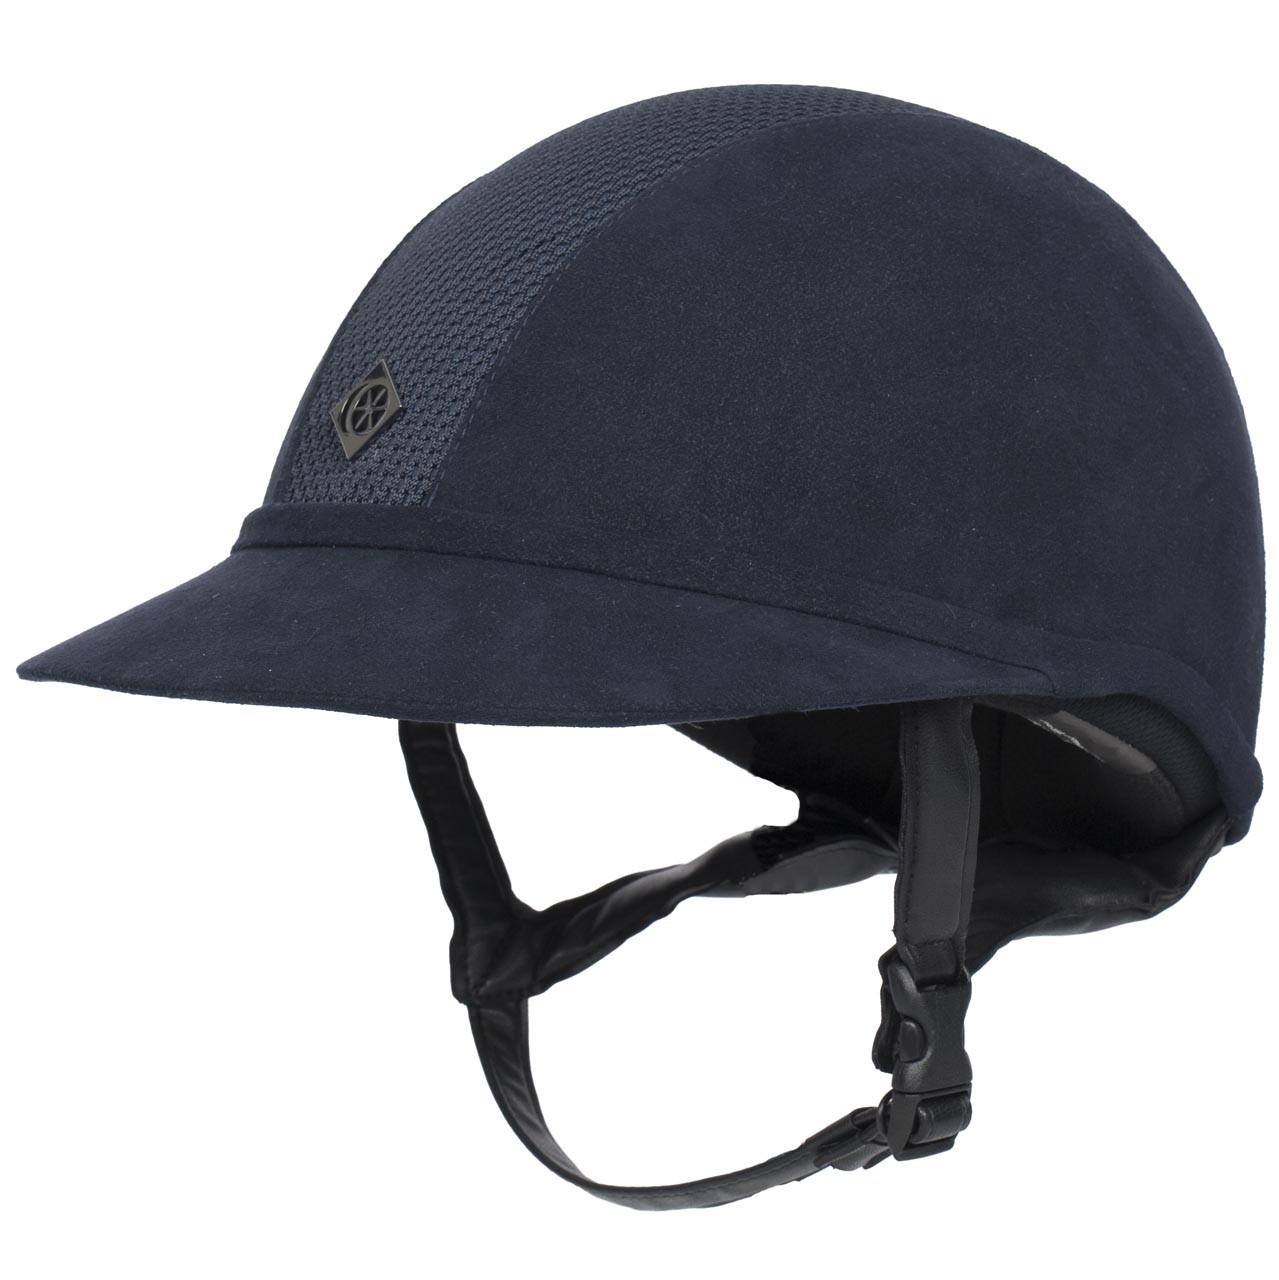 Charles Owen SP8 cap